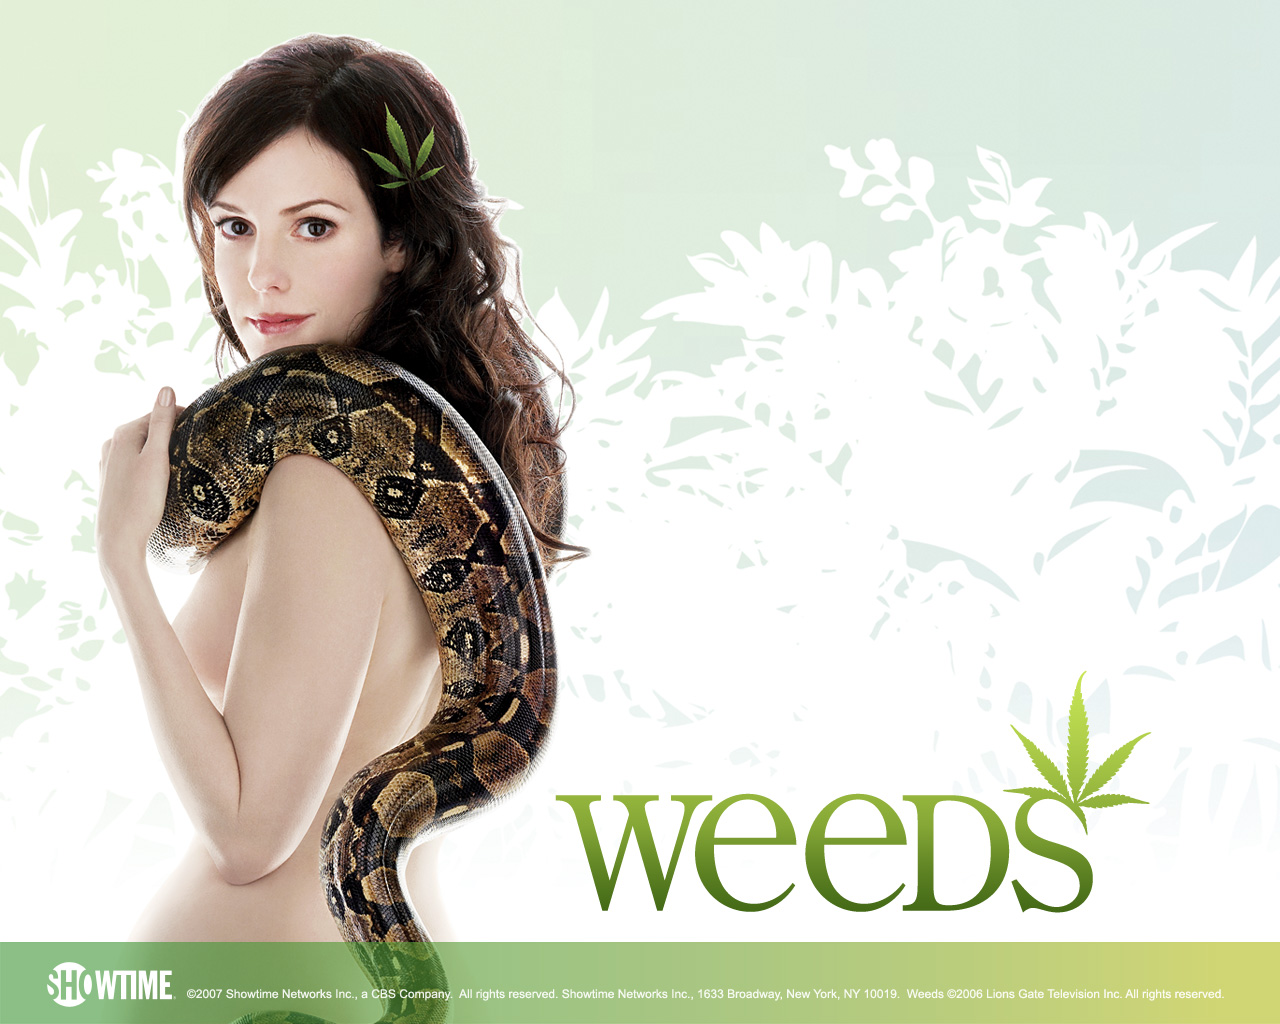 http://therealsouthkorea.files.wordpress.com/2009/01/weeds.jpg